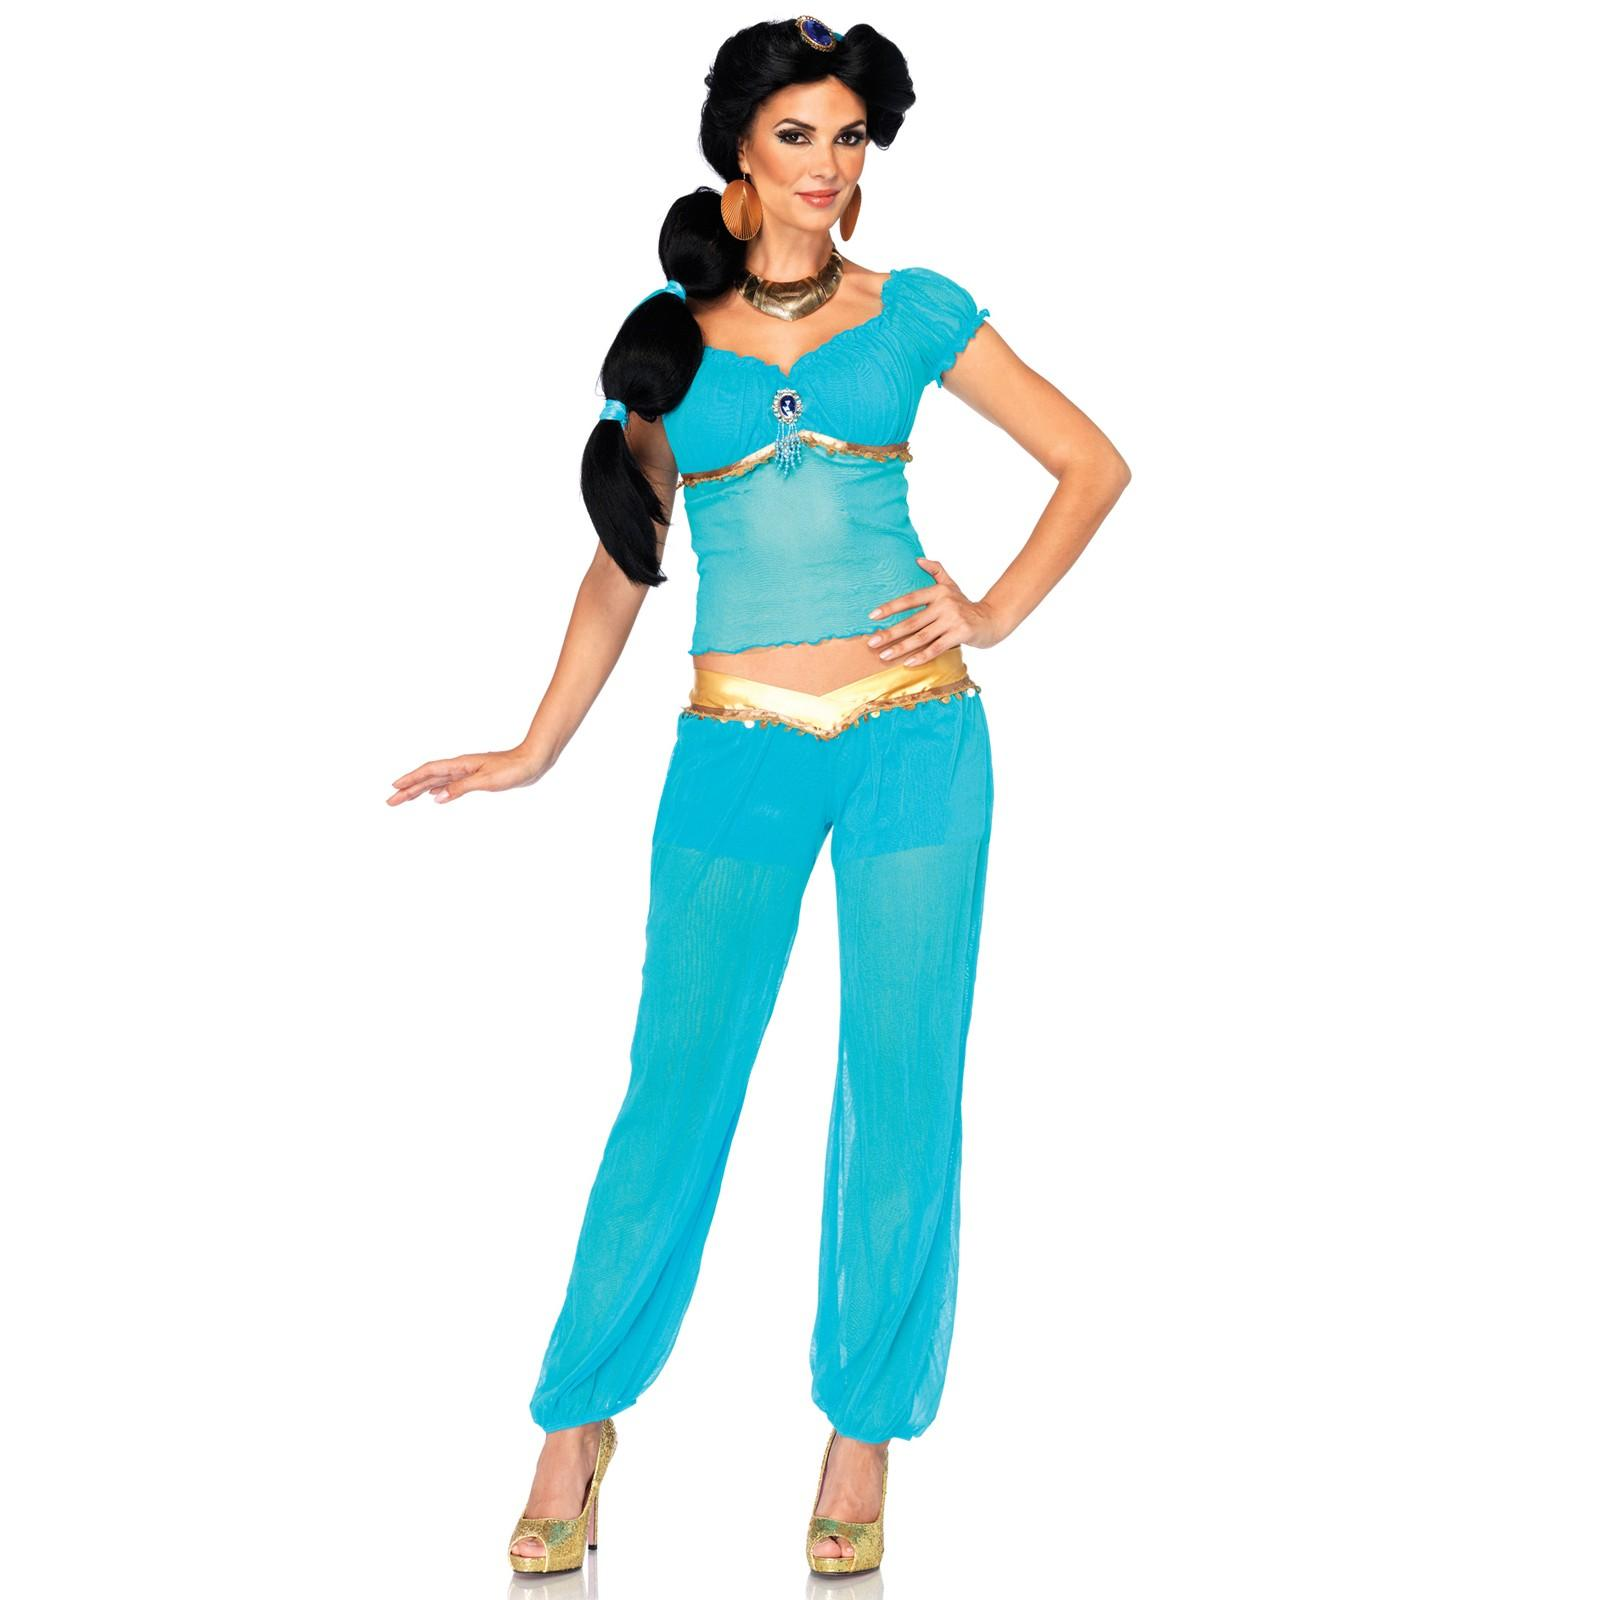 Halloween costume ideas nakedlydressed and i got great costume for myself but maybe some of you dont have much time to prepare perfect costume so i will give you some great ideas for costume solutioingenieria Gallery